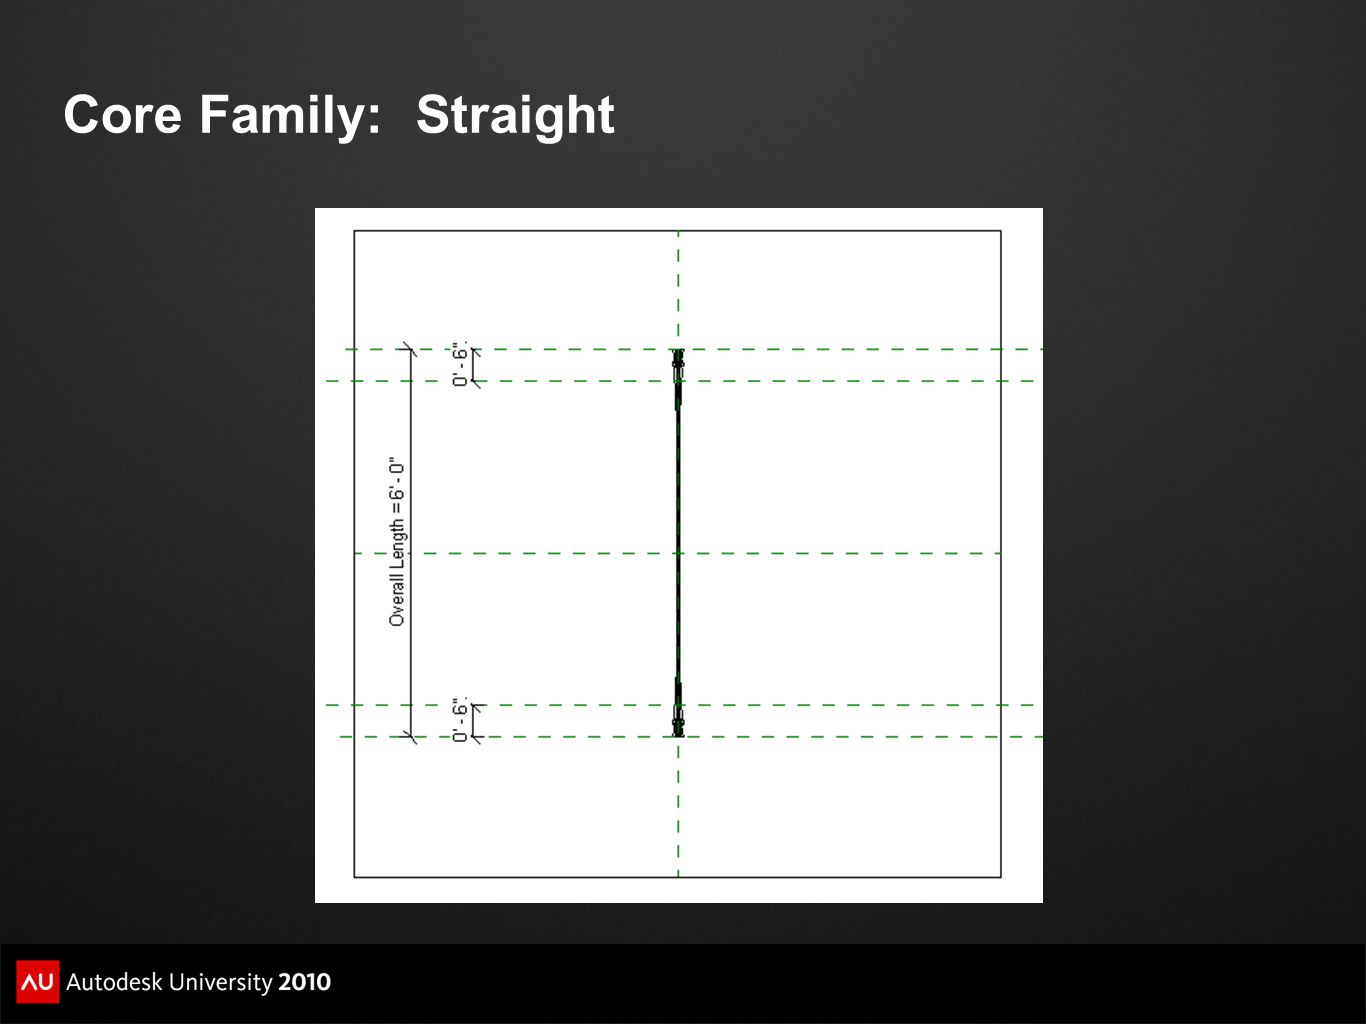 Core Family: Straight